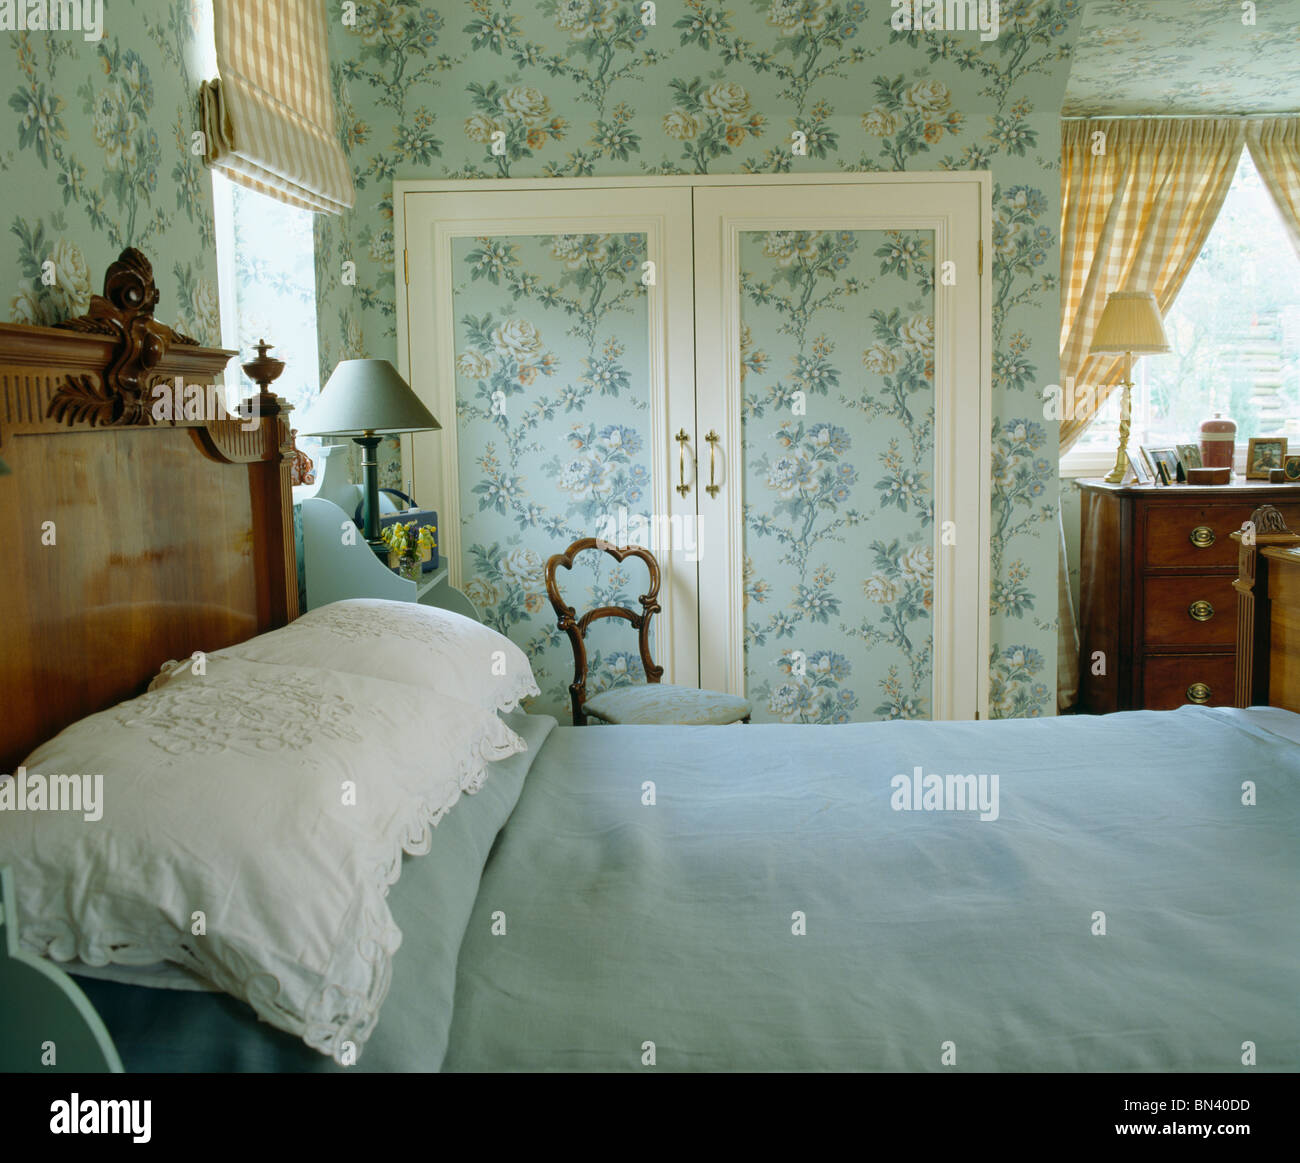 blue bed cover and white pillows on bed in country bedroom with